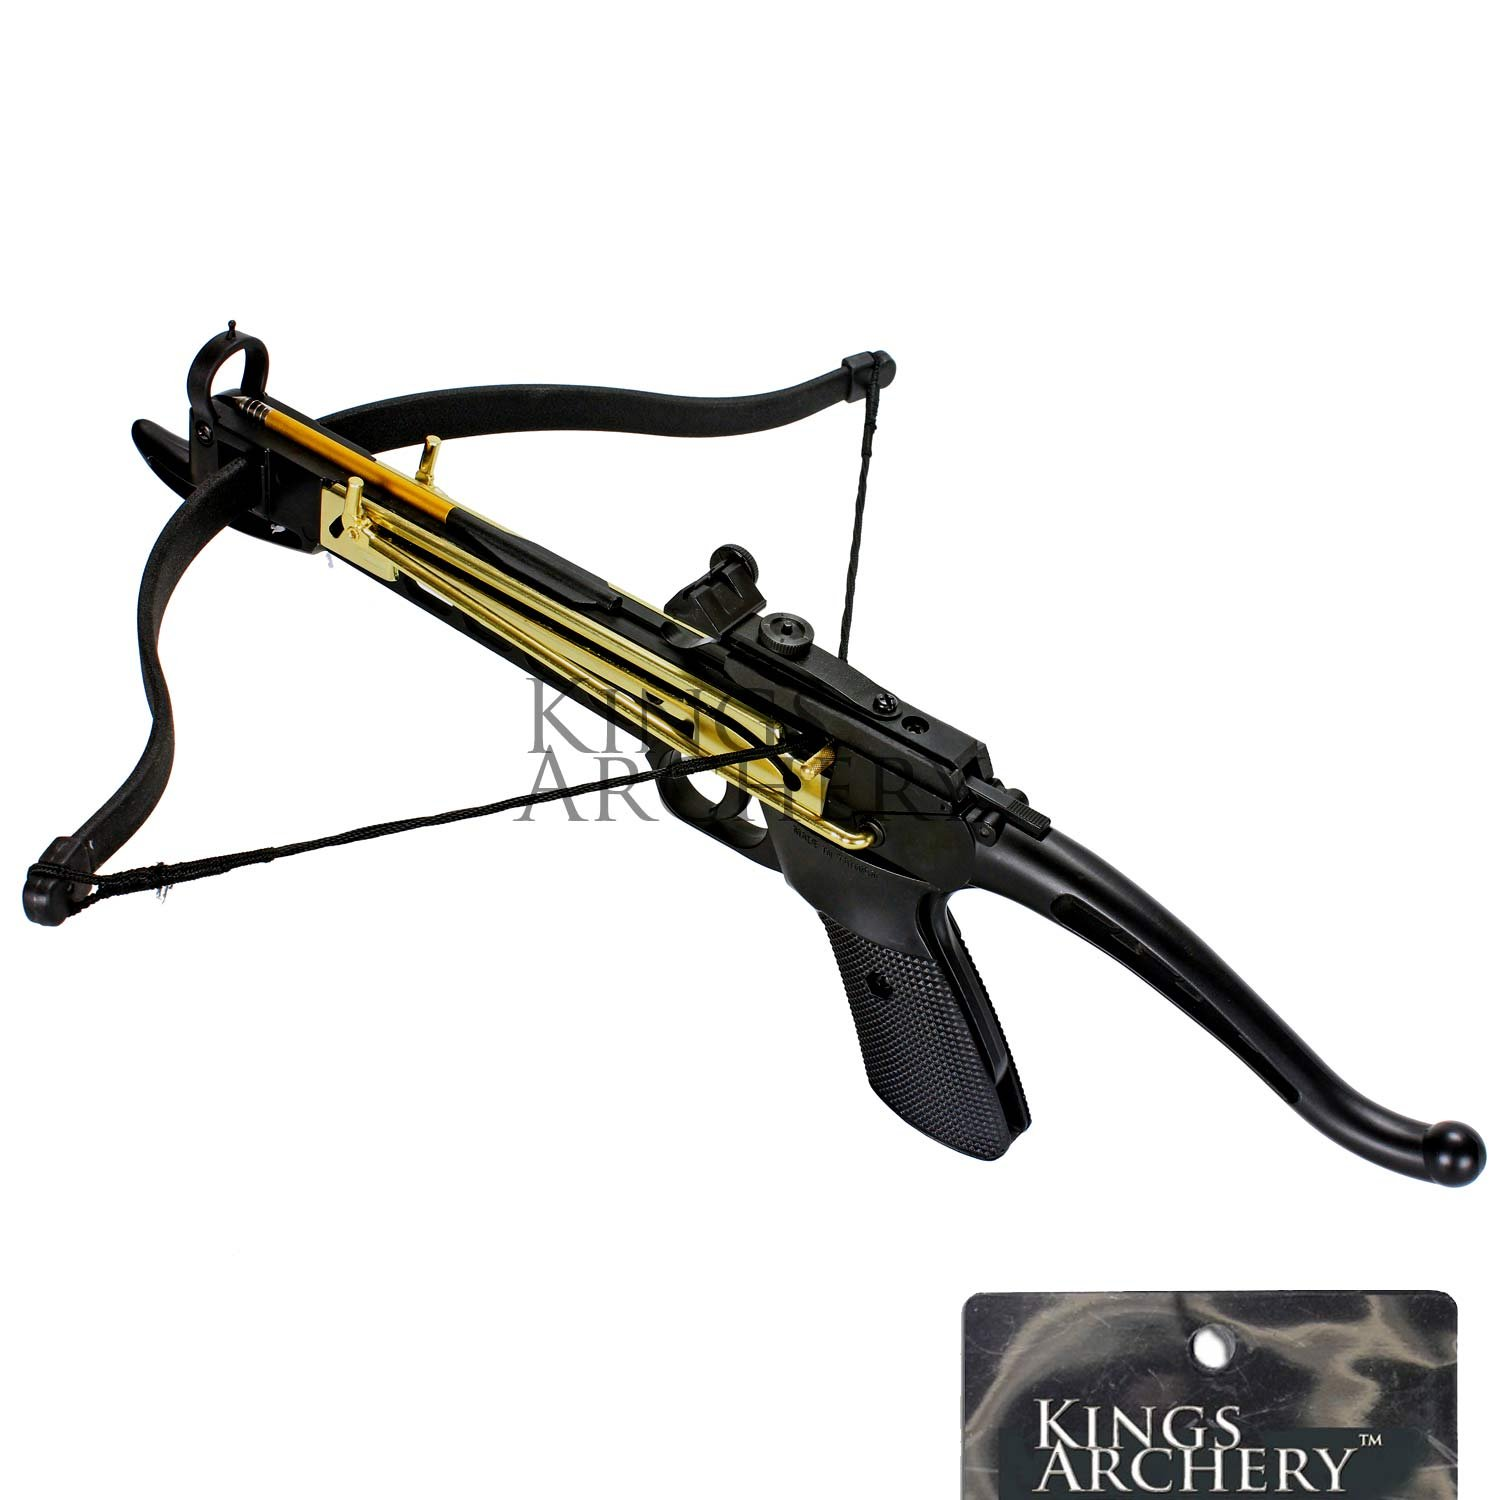 Crossbow Self-Cocking 80 LBS by KingsArchery® with Hunting Scope, 3 Aluminium Arrow Bolts, and Bonus 120-pack of Colored PVC Arrow Bolts + KingsArchery® Warranty by KingsArchery (Image #10)